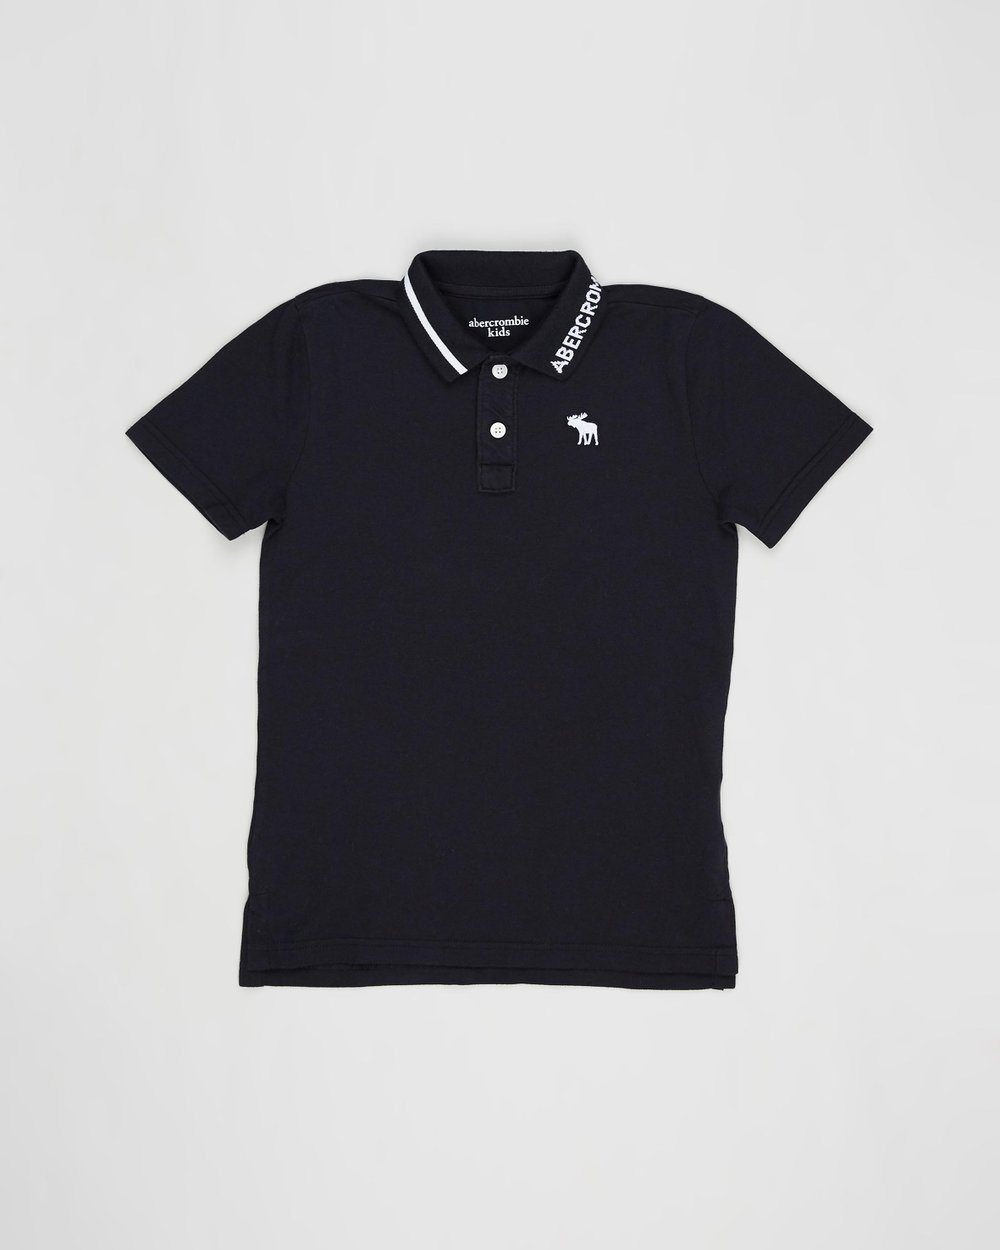 a22c29b45 Short Sleeve Polo Shirt - Teen